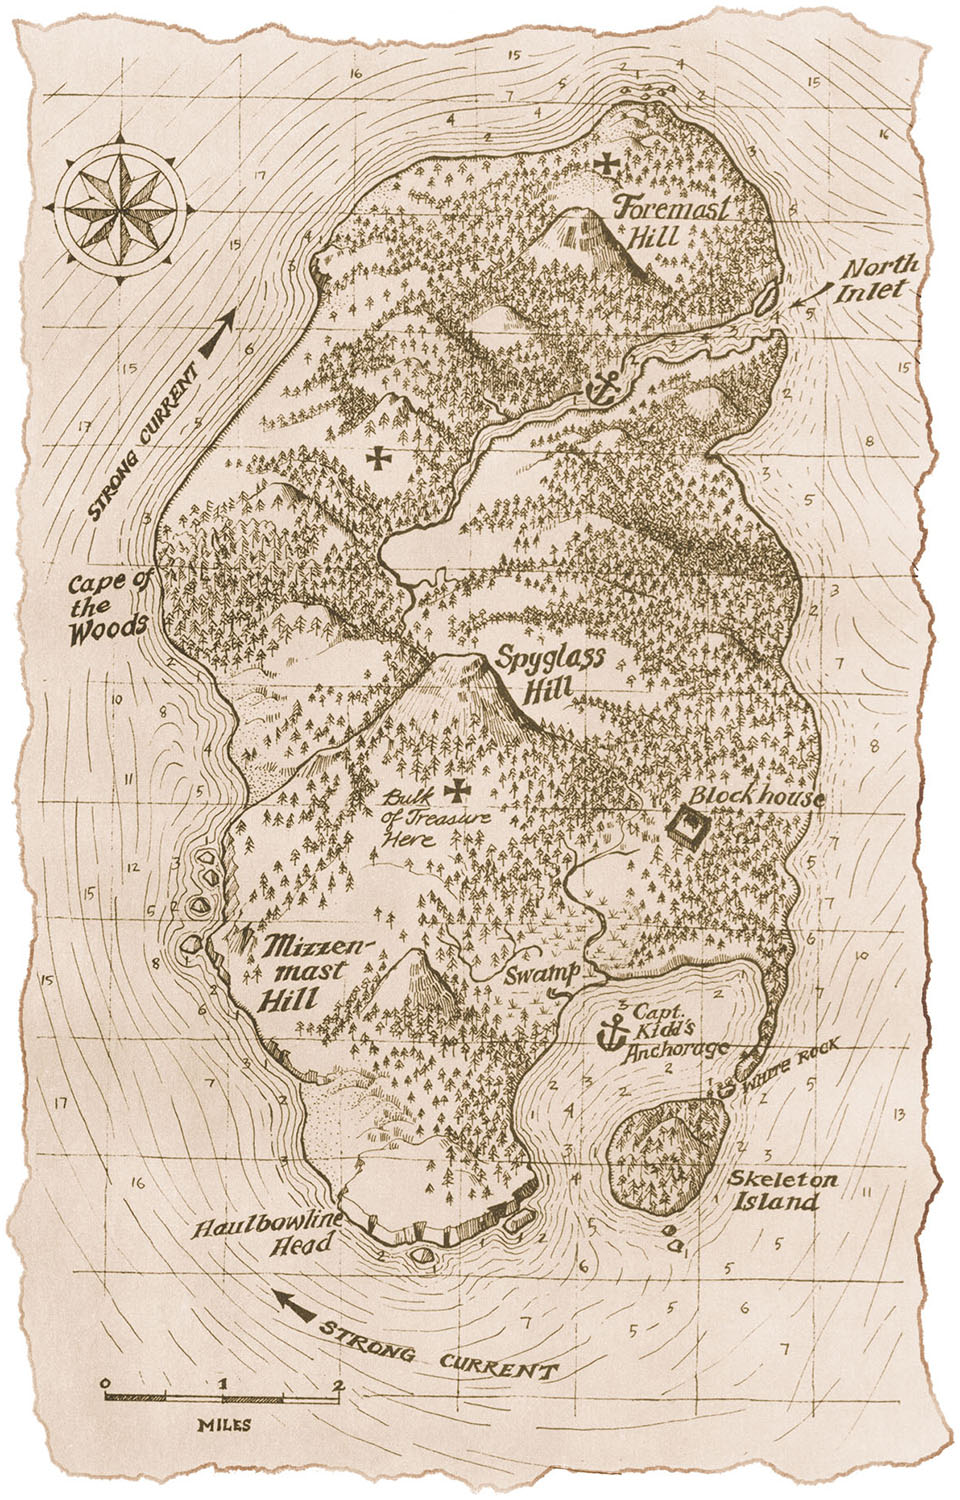 For    Treasure Island,  by John Louis Stephenson   (Map copyright © Readers Digest Association, Inc. 1985). This version was based on a close reading of the text, not on any previously published maps. This map was drawn in pen & ink on illustration board.